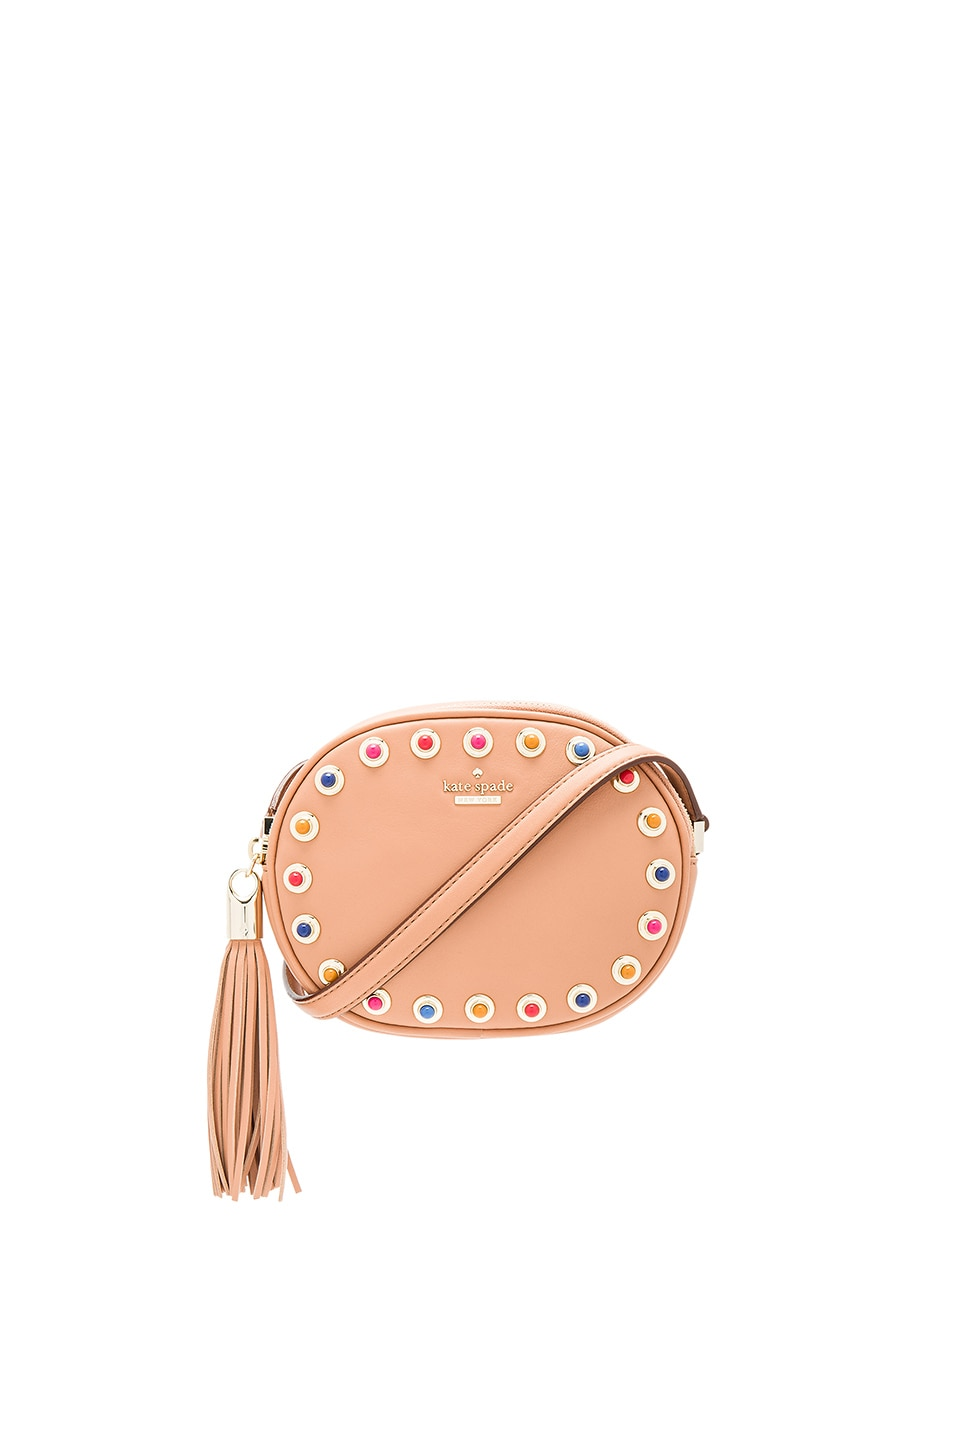 Tinley Crossbody by Kate Spade New York